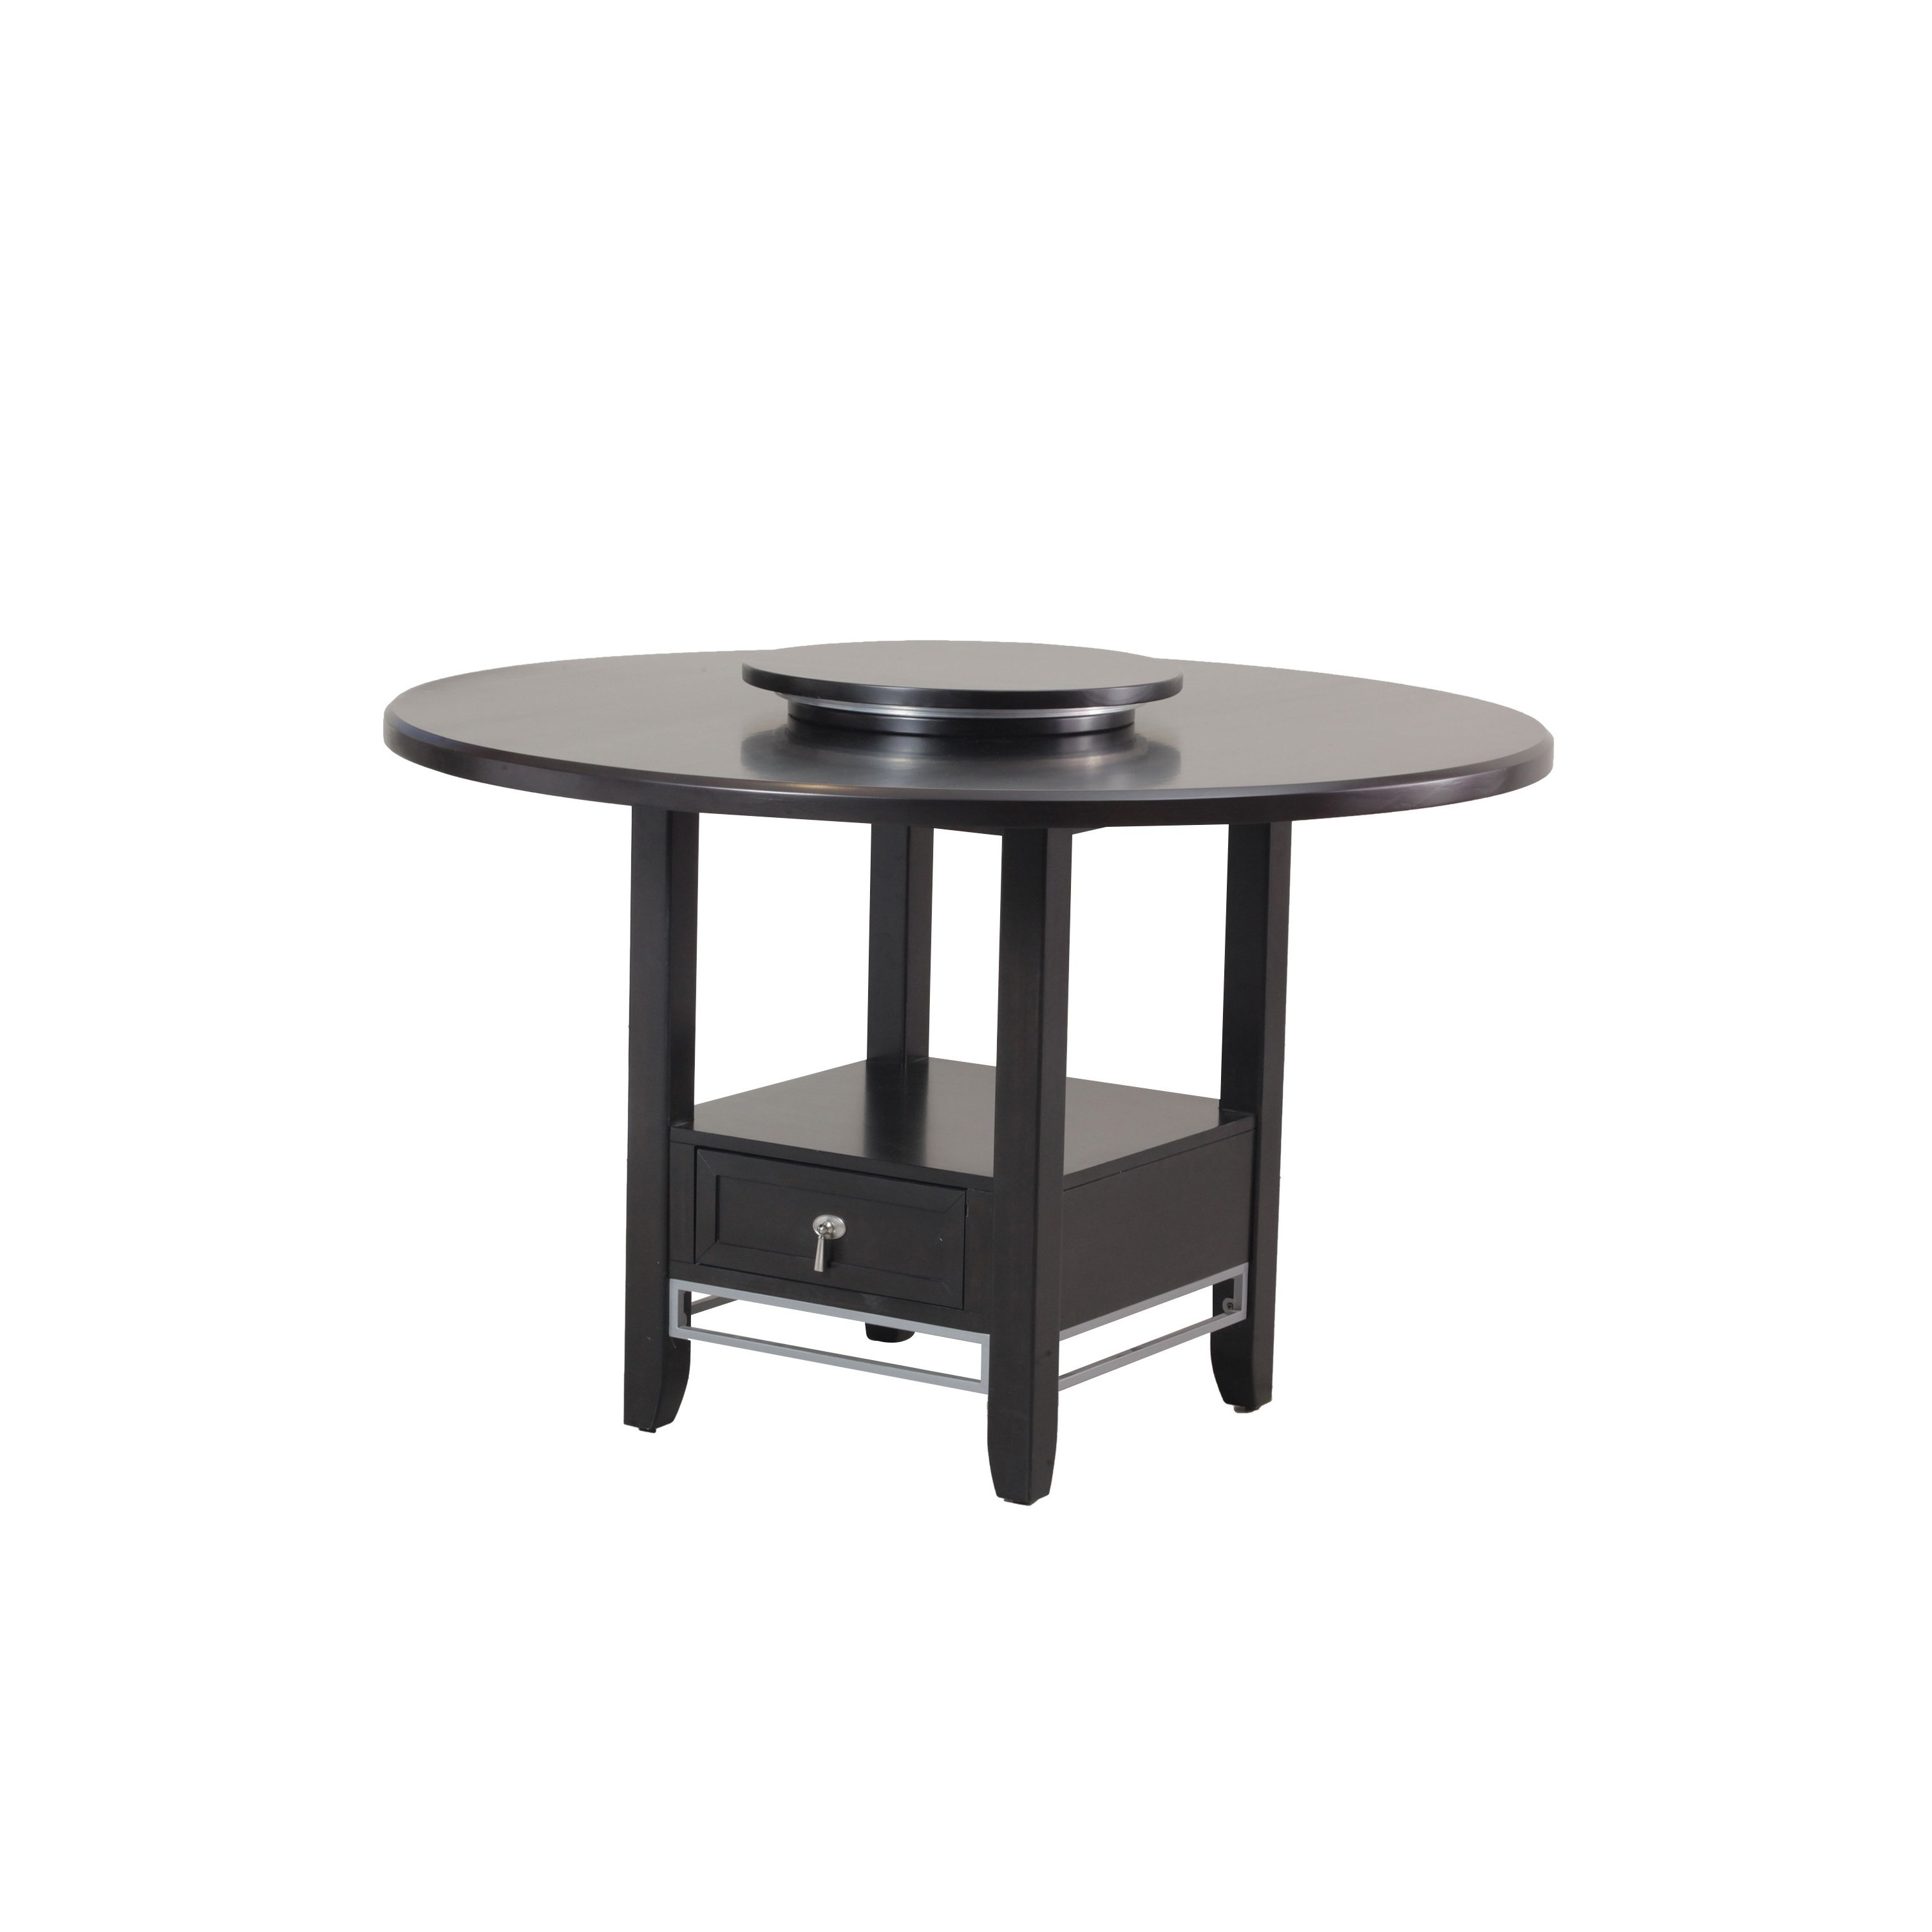 Well Known Shop Caden Dining Table – Cappuccino – Free Shipping Today With Regard To Caden Round Dining Tables (View 24 of 25)